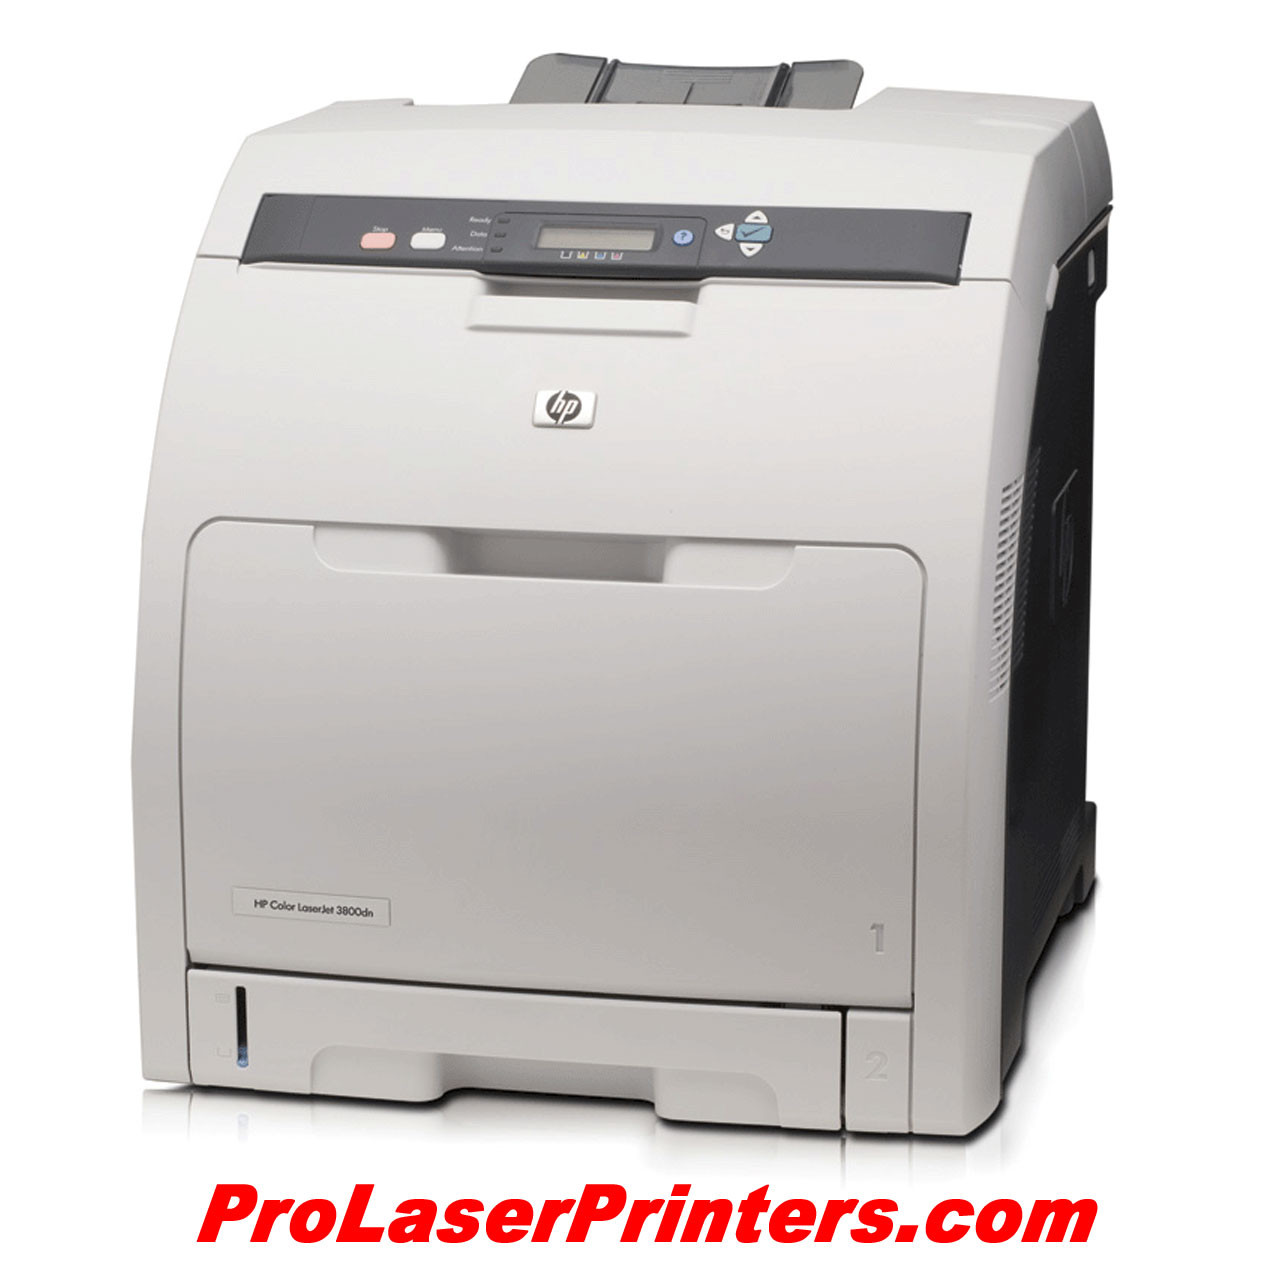 HP (Hewlett-Packard) Color LaserJet 3800dn Laser Printer - Right Angle View  -